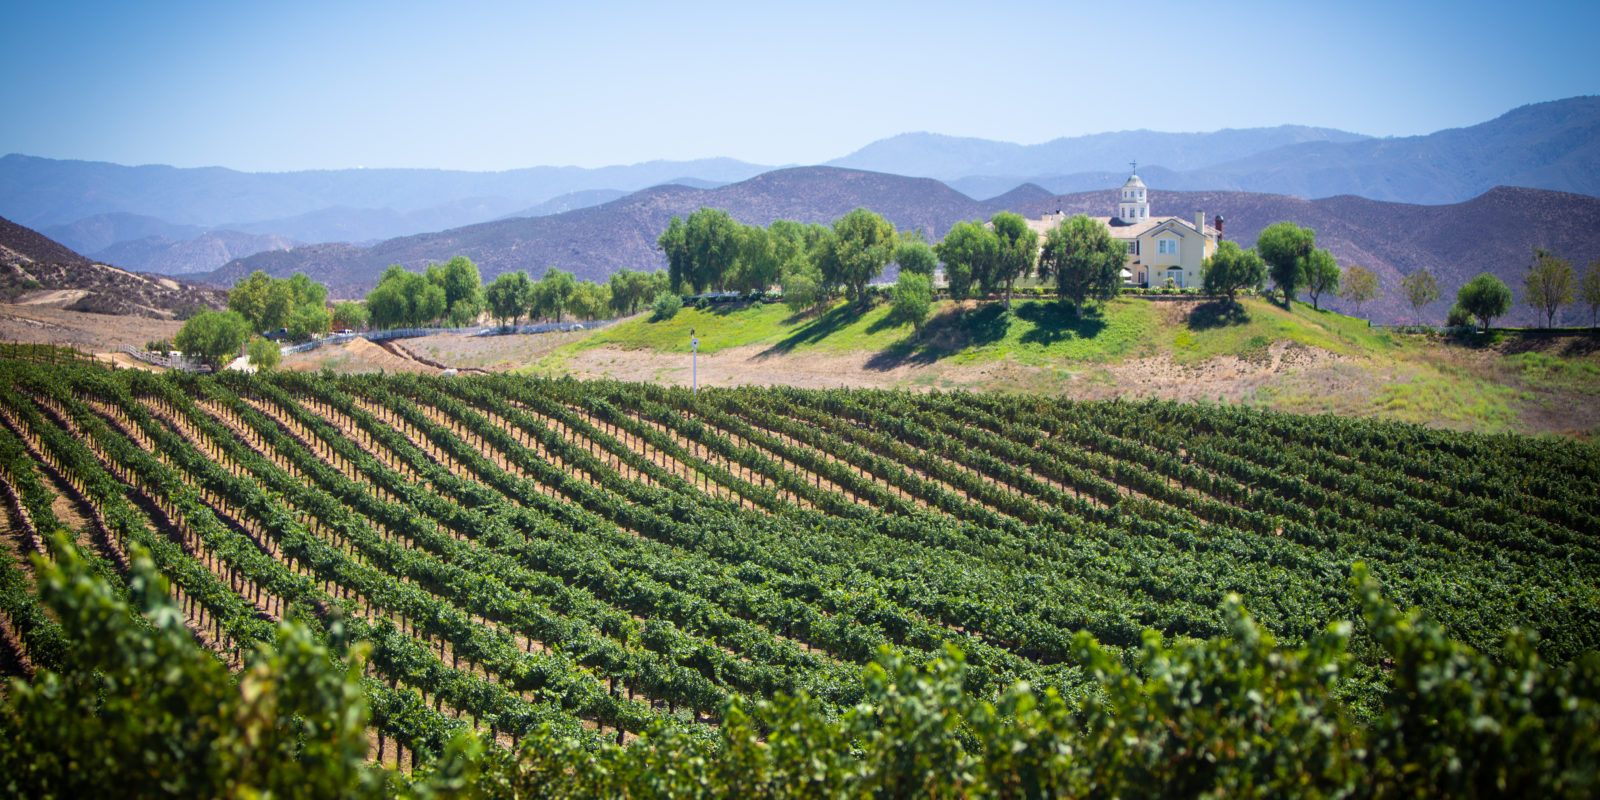 Southern California's Temecula Valley